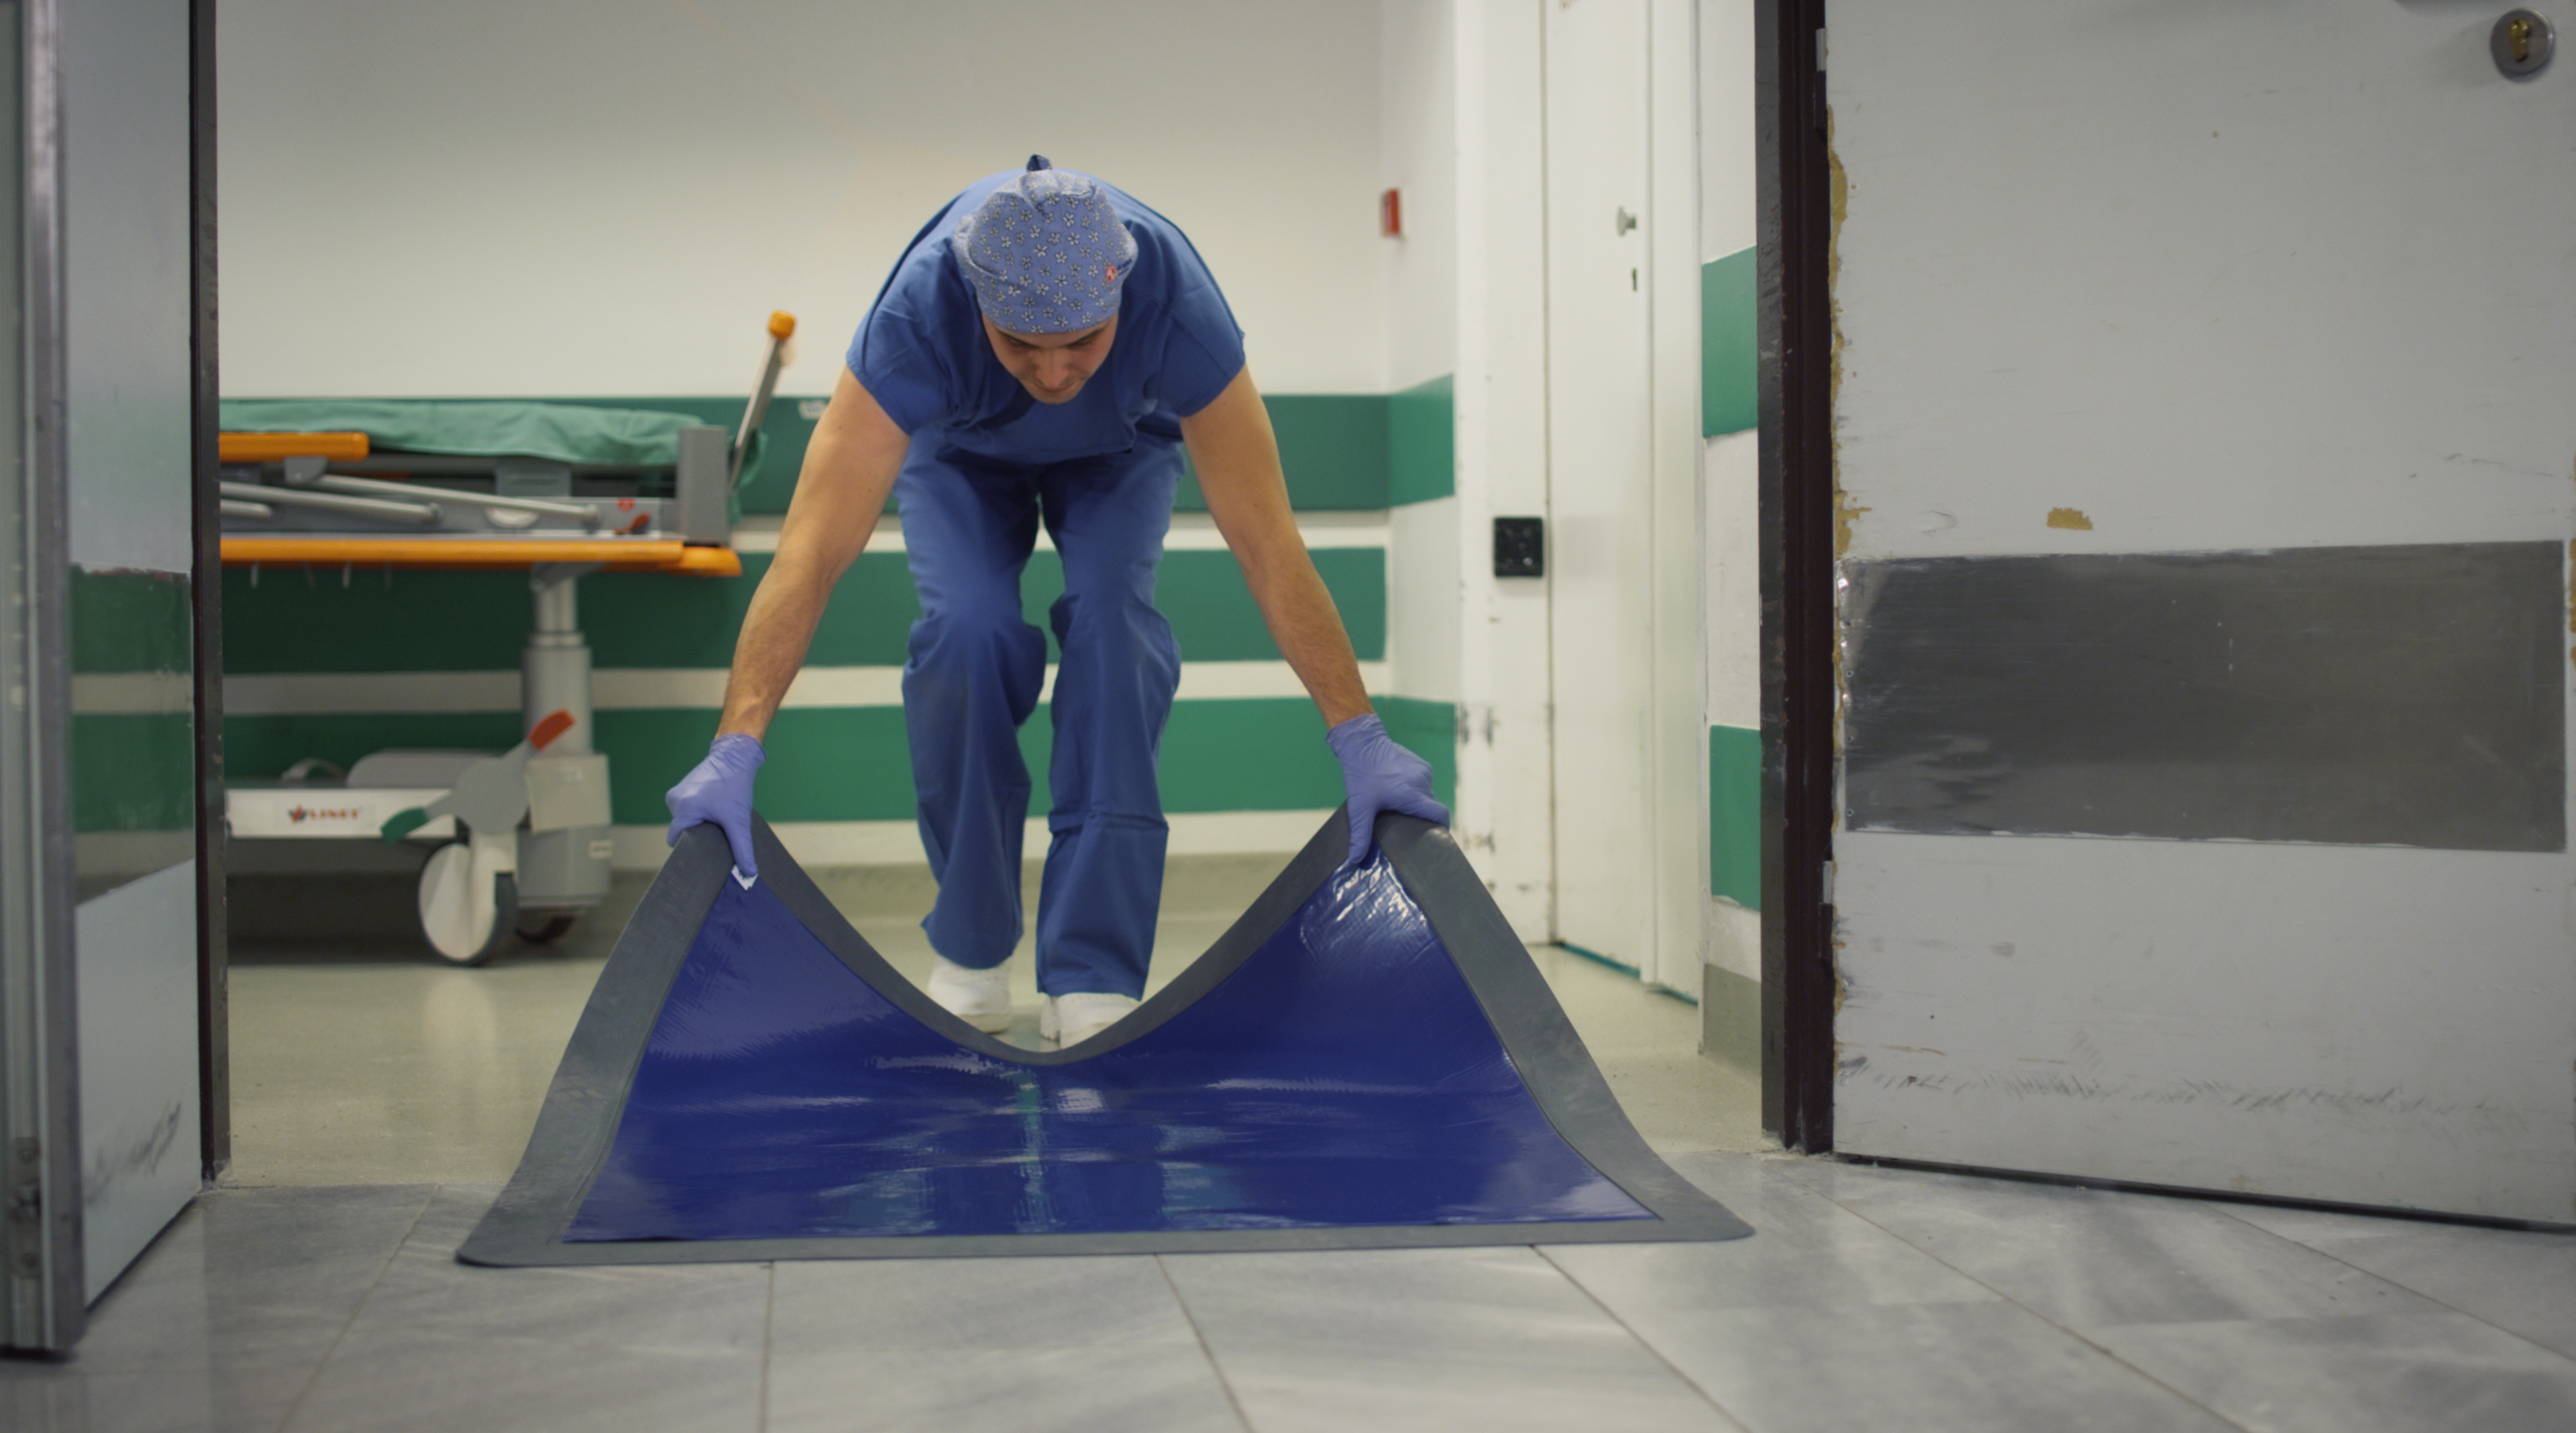 In the picture there is a man who is bent down and he is dragging an adhesive mat in a rubber frame.